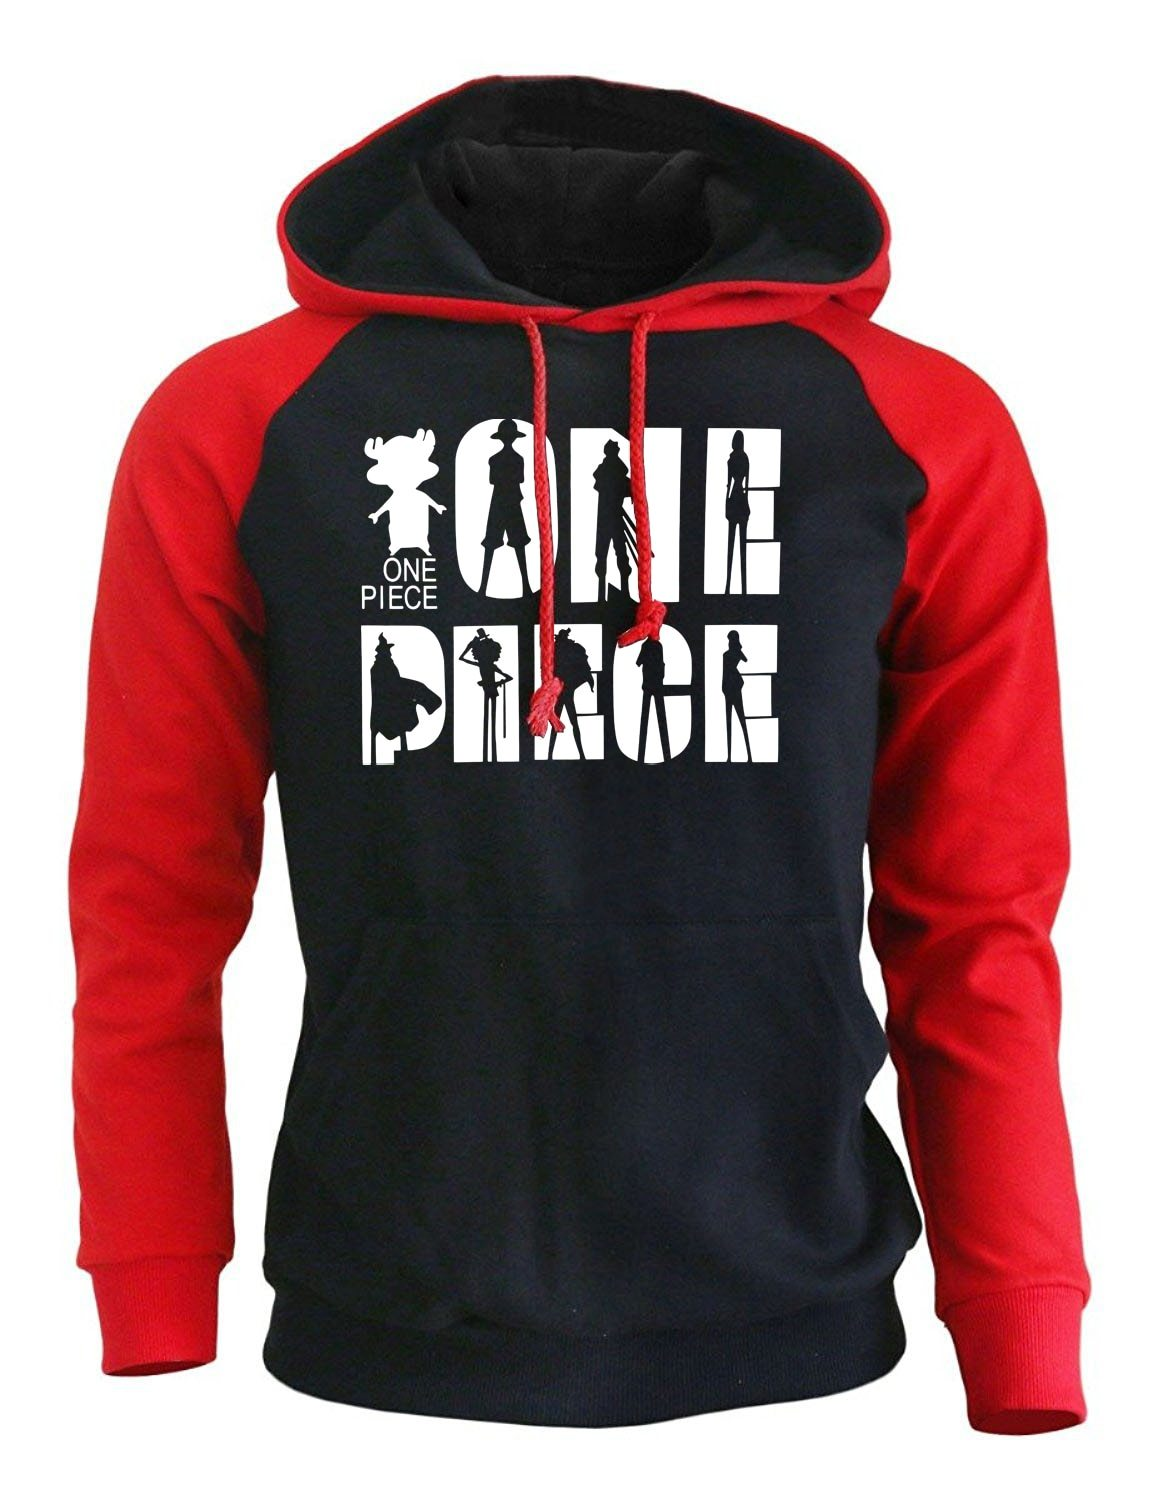 Straw Hats Hoodie MNK1108 red black / S Official One Piece Merch